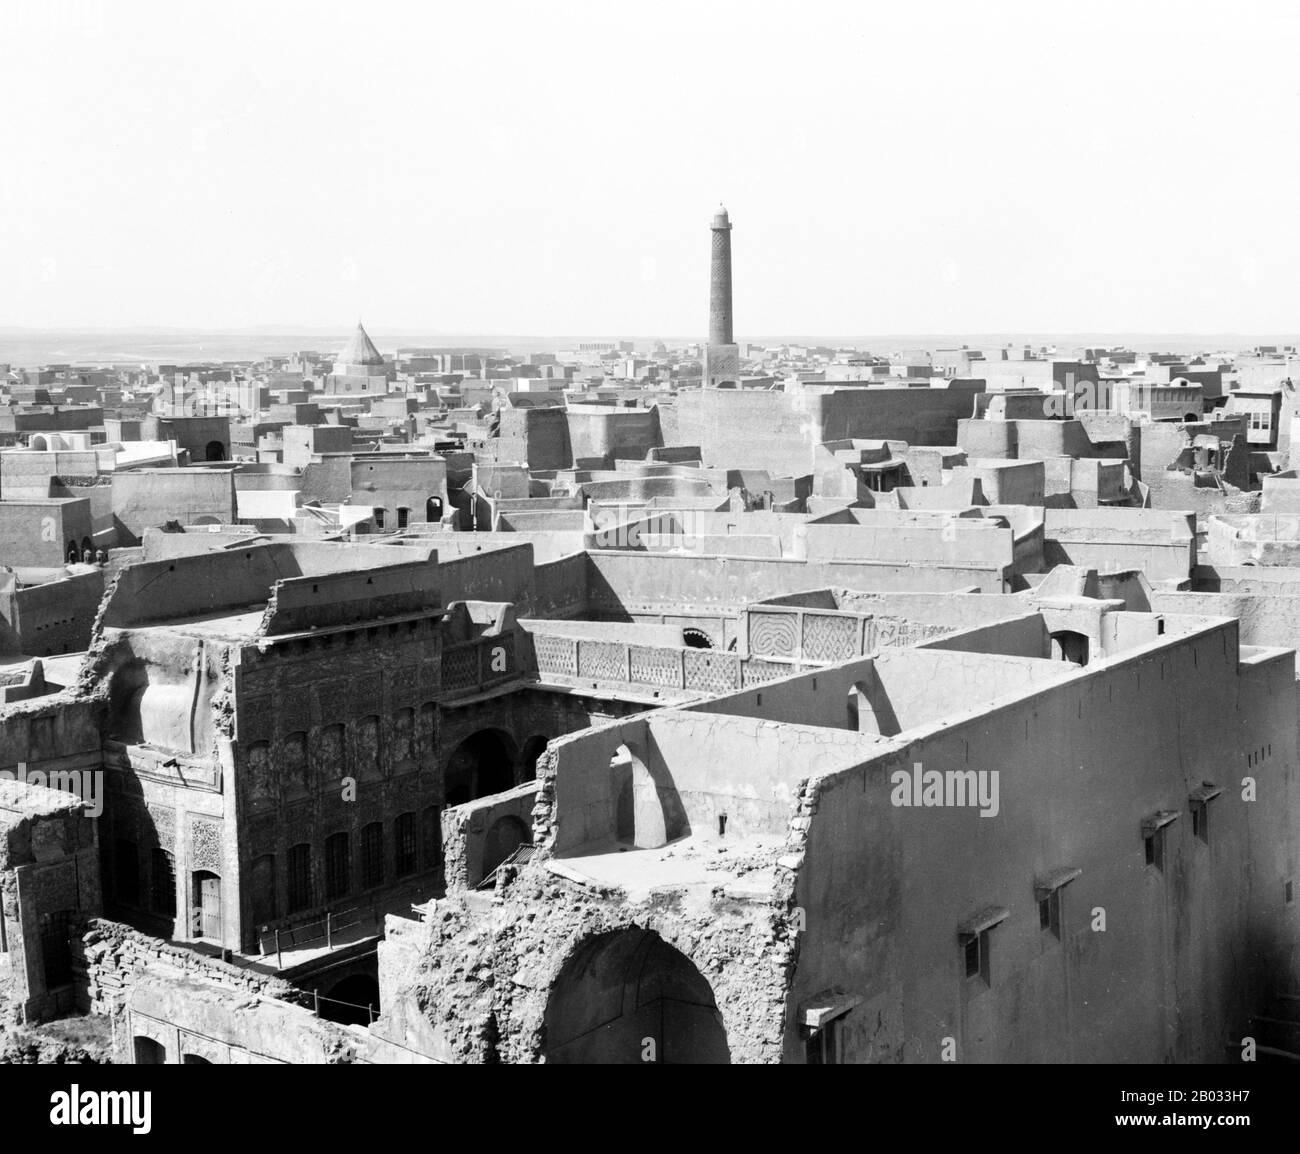 The Great Mosque of al-Nuri is a historical mosque in Mosul, Iraq famous for its leaning minaret. Tradition holds that Nur ad-Din Zangi built the mosque in 1172-73, shortly before his death. According to the chronicle of Ibn al-Athir, after Nur ad-Din took control of Mosul he ordered his nephew Fakhr al-Din to build the mosque.  The structure was targeted by ISIS militants who occupied Mosul on June 10, 2014 and previously destroyed the Tomb of Jonah. However residents of Mosul incensed with the destruction of their cultural sites protected the mosque by forming a human chain and forming a res Stock Photo